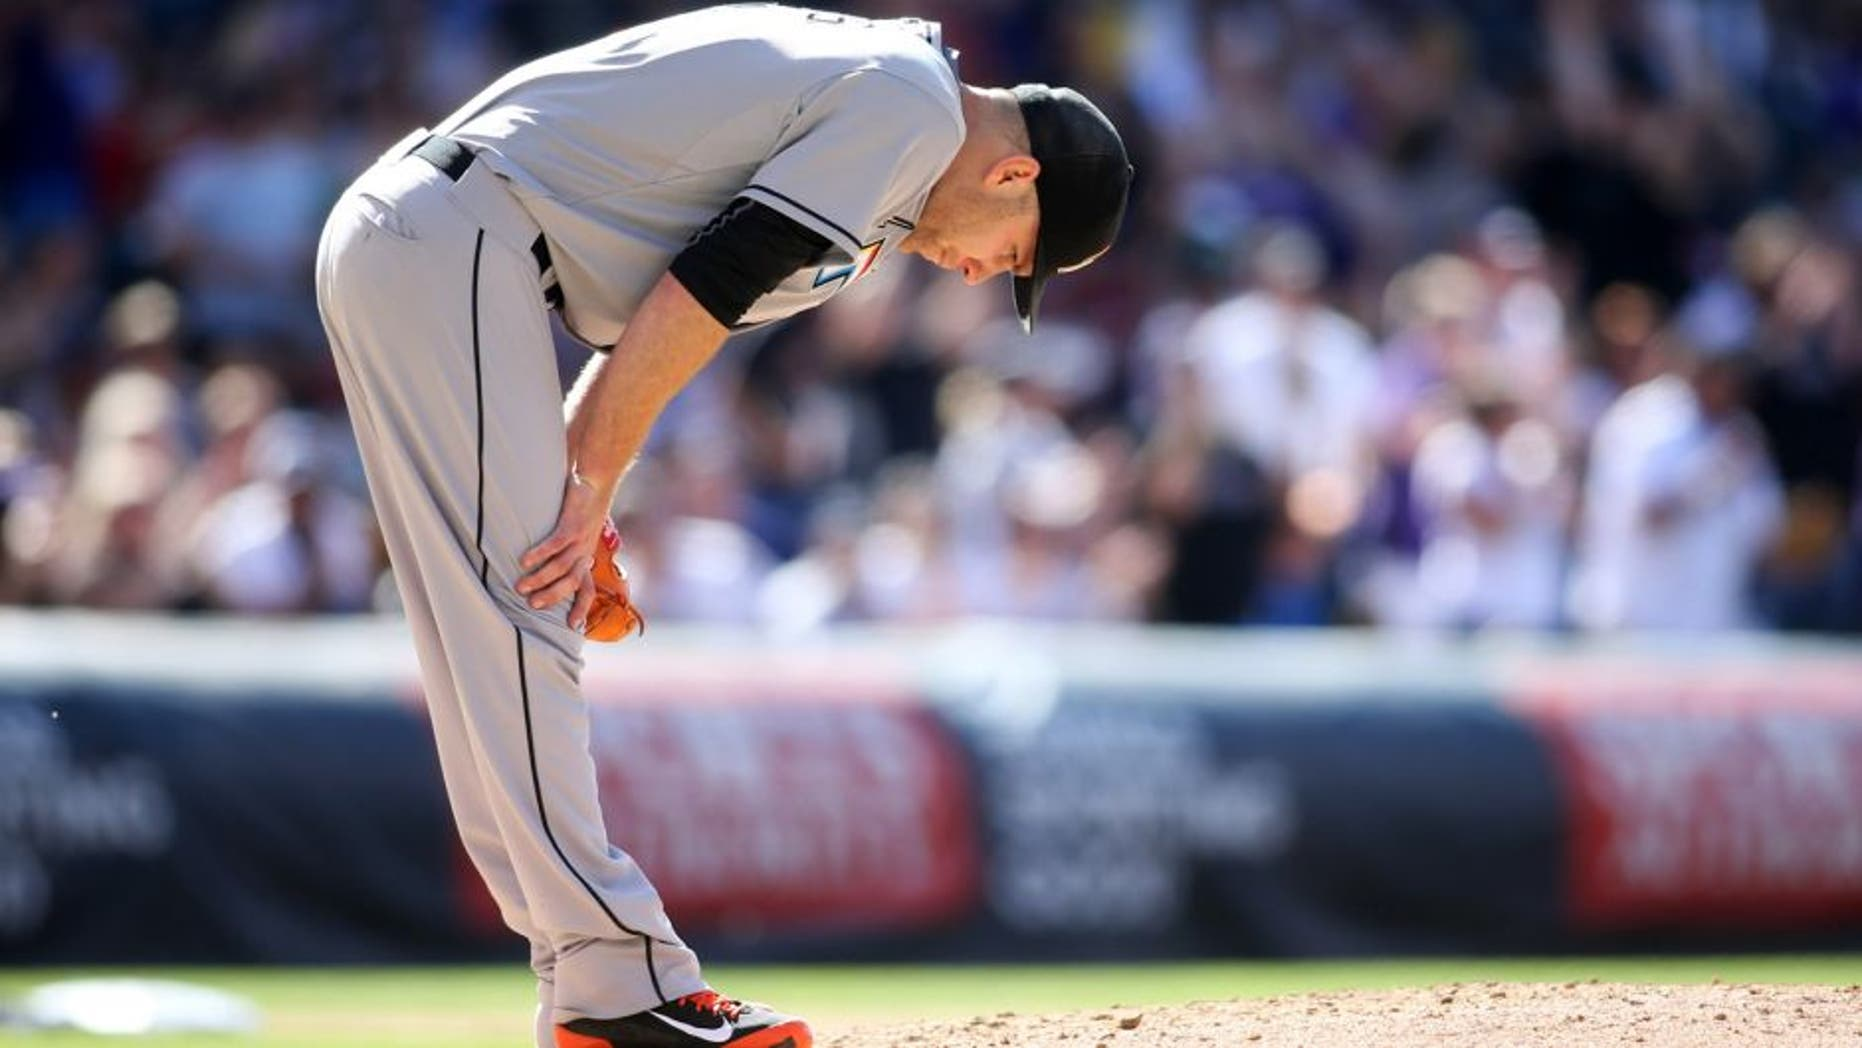 Jun 6, 2015; Denver, CO, USA; Miami Marlins starting pitcher David Phelps (41) reacts after Colorado Rockies right fielder Carlos Gonzalez (5) hit a home run during the fourth inning at Coors Field. Mandatory Credit: Chris Humphreys-USA TODAY Sports